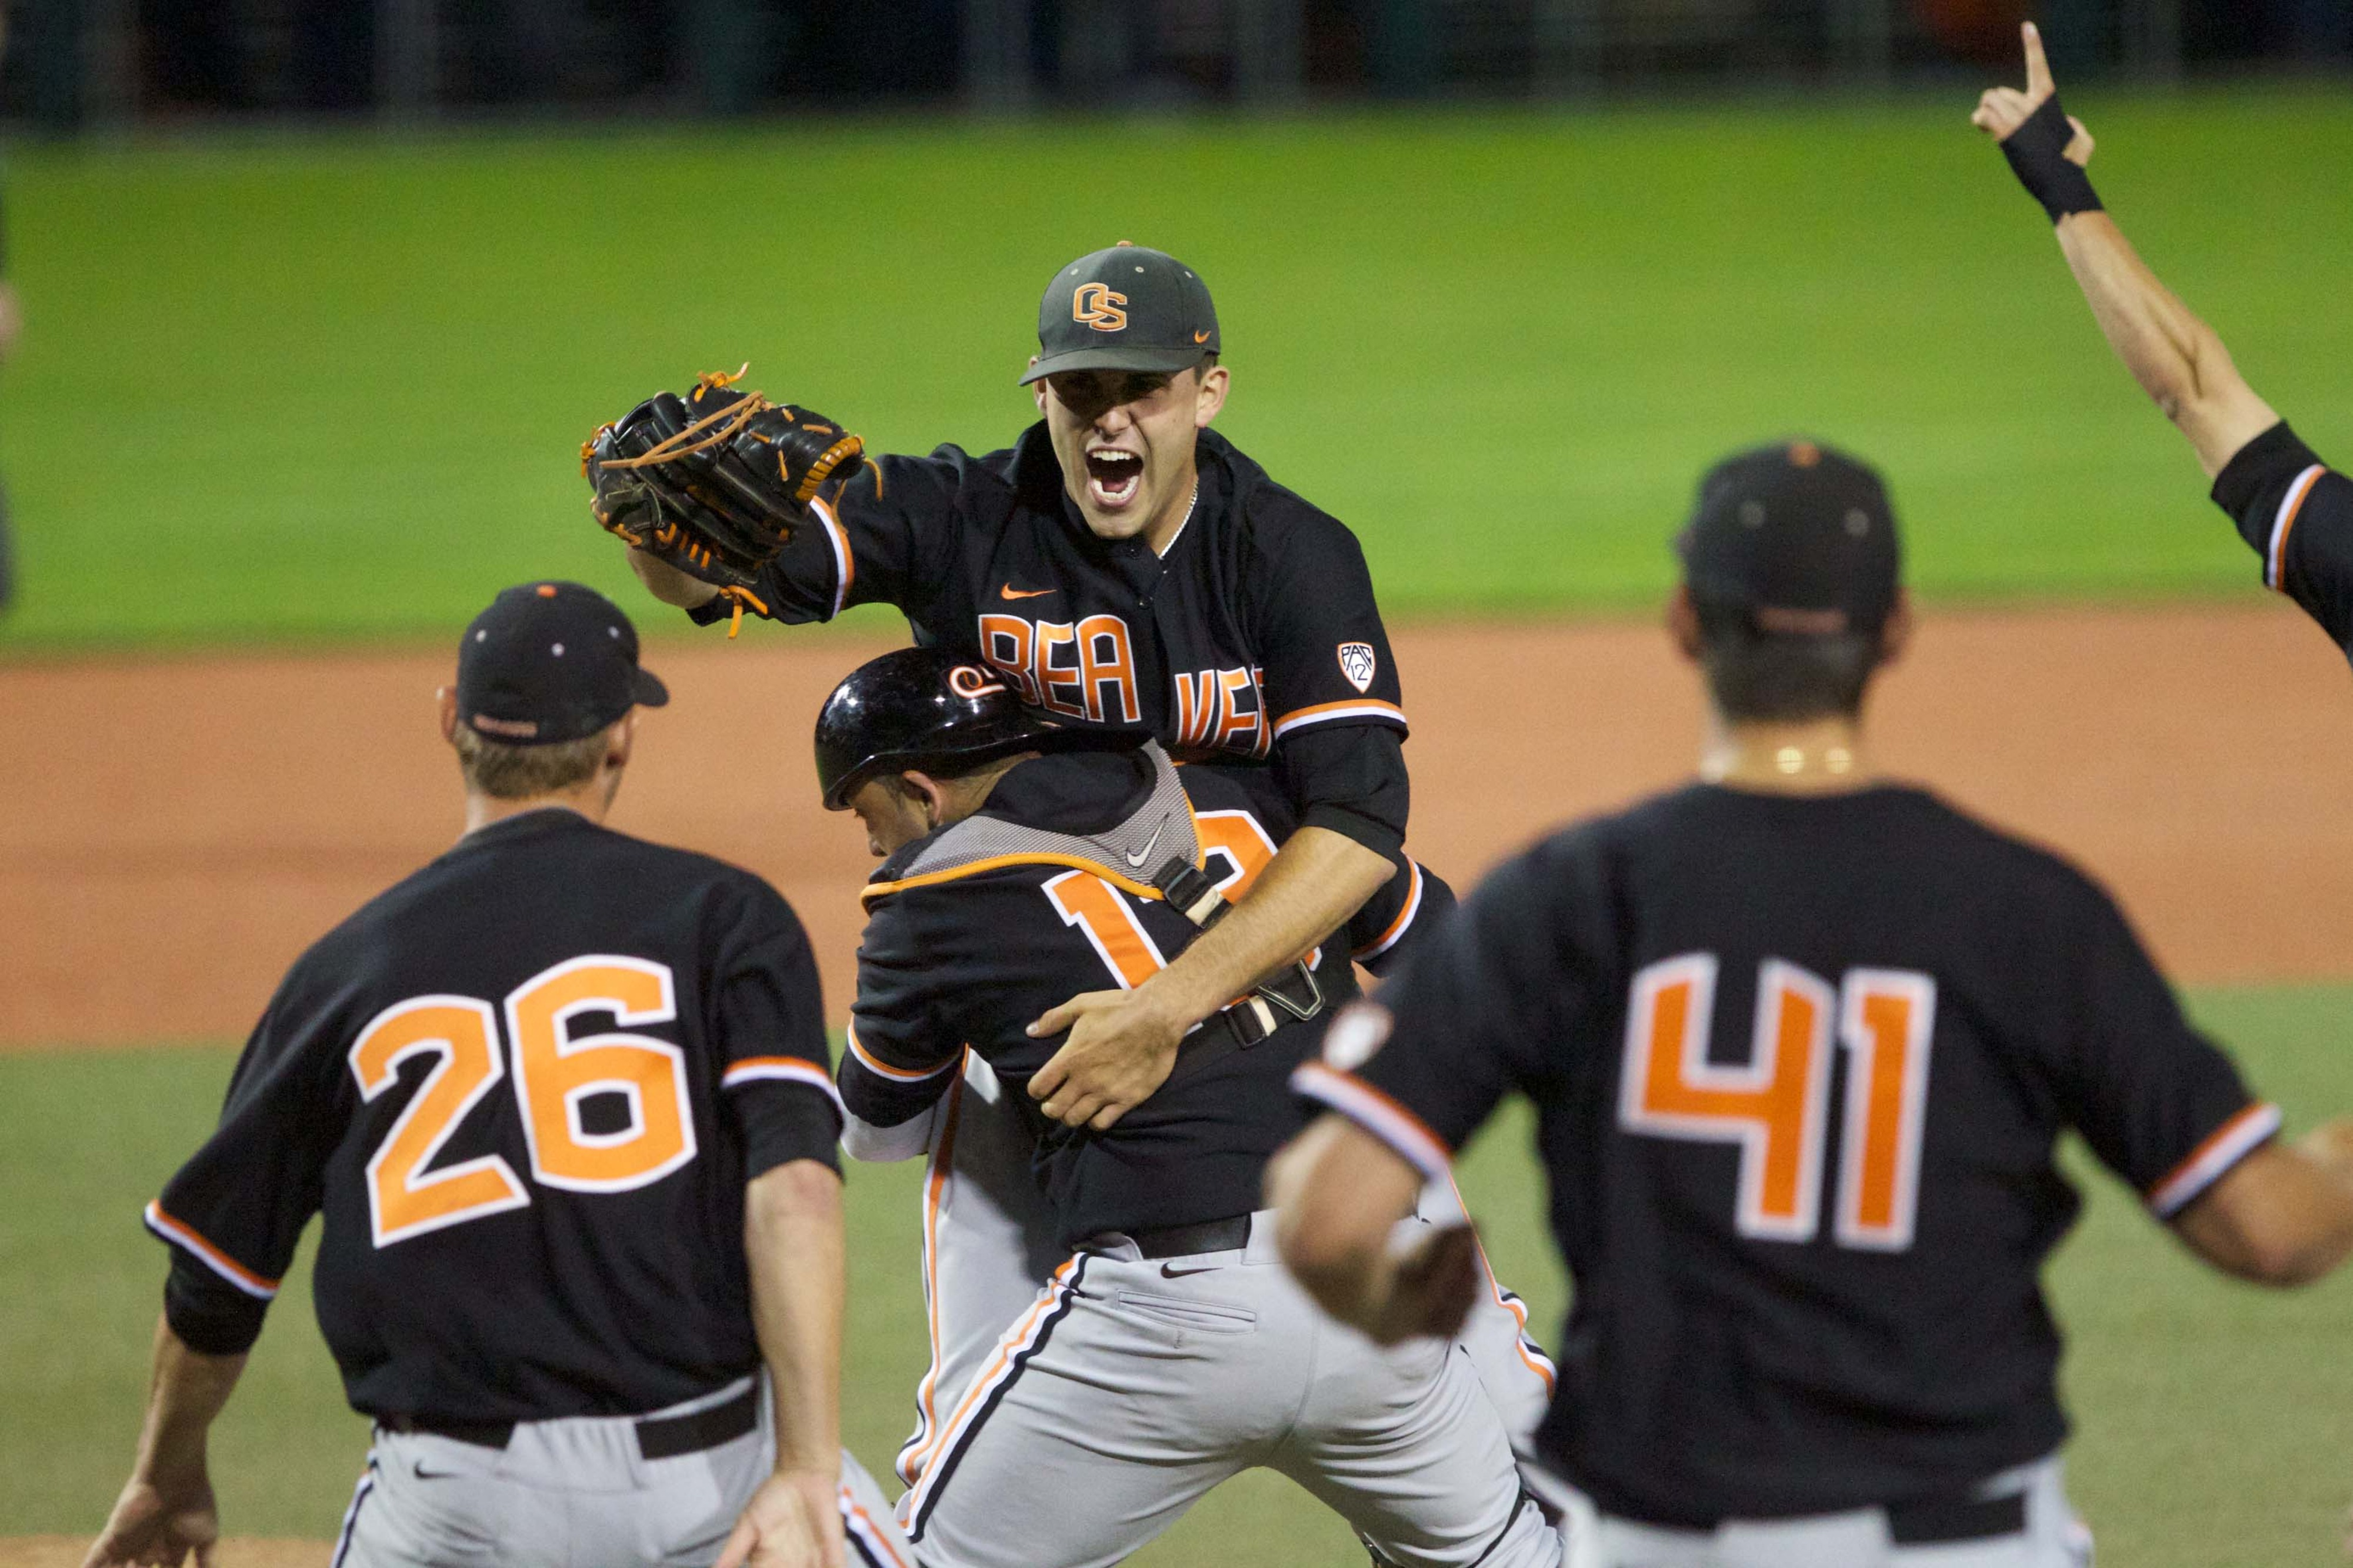 Jake Rodriguez is the one giving a bear hug